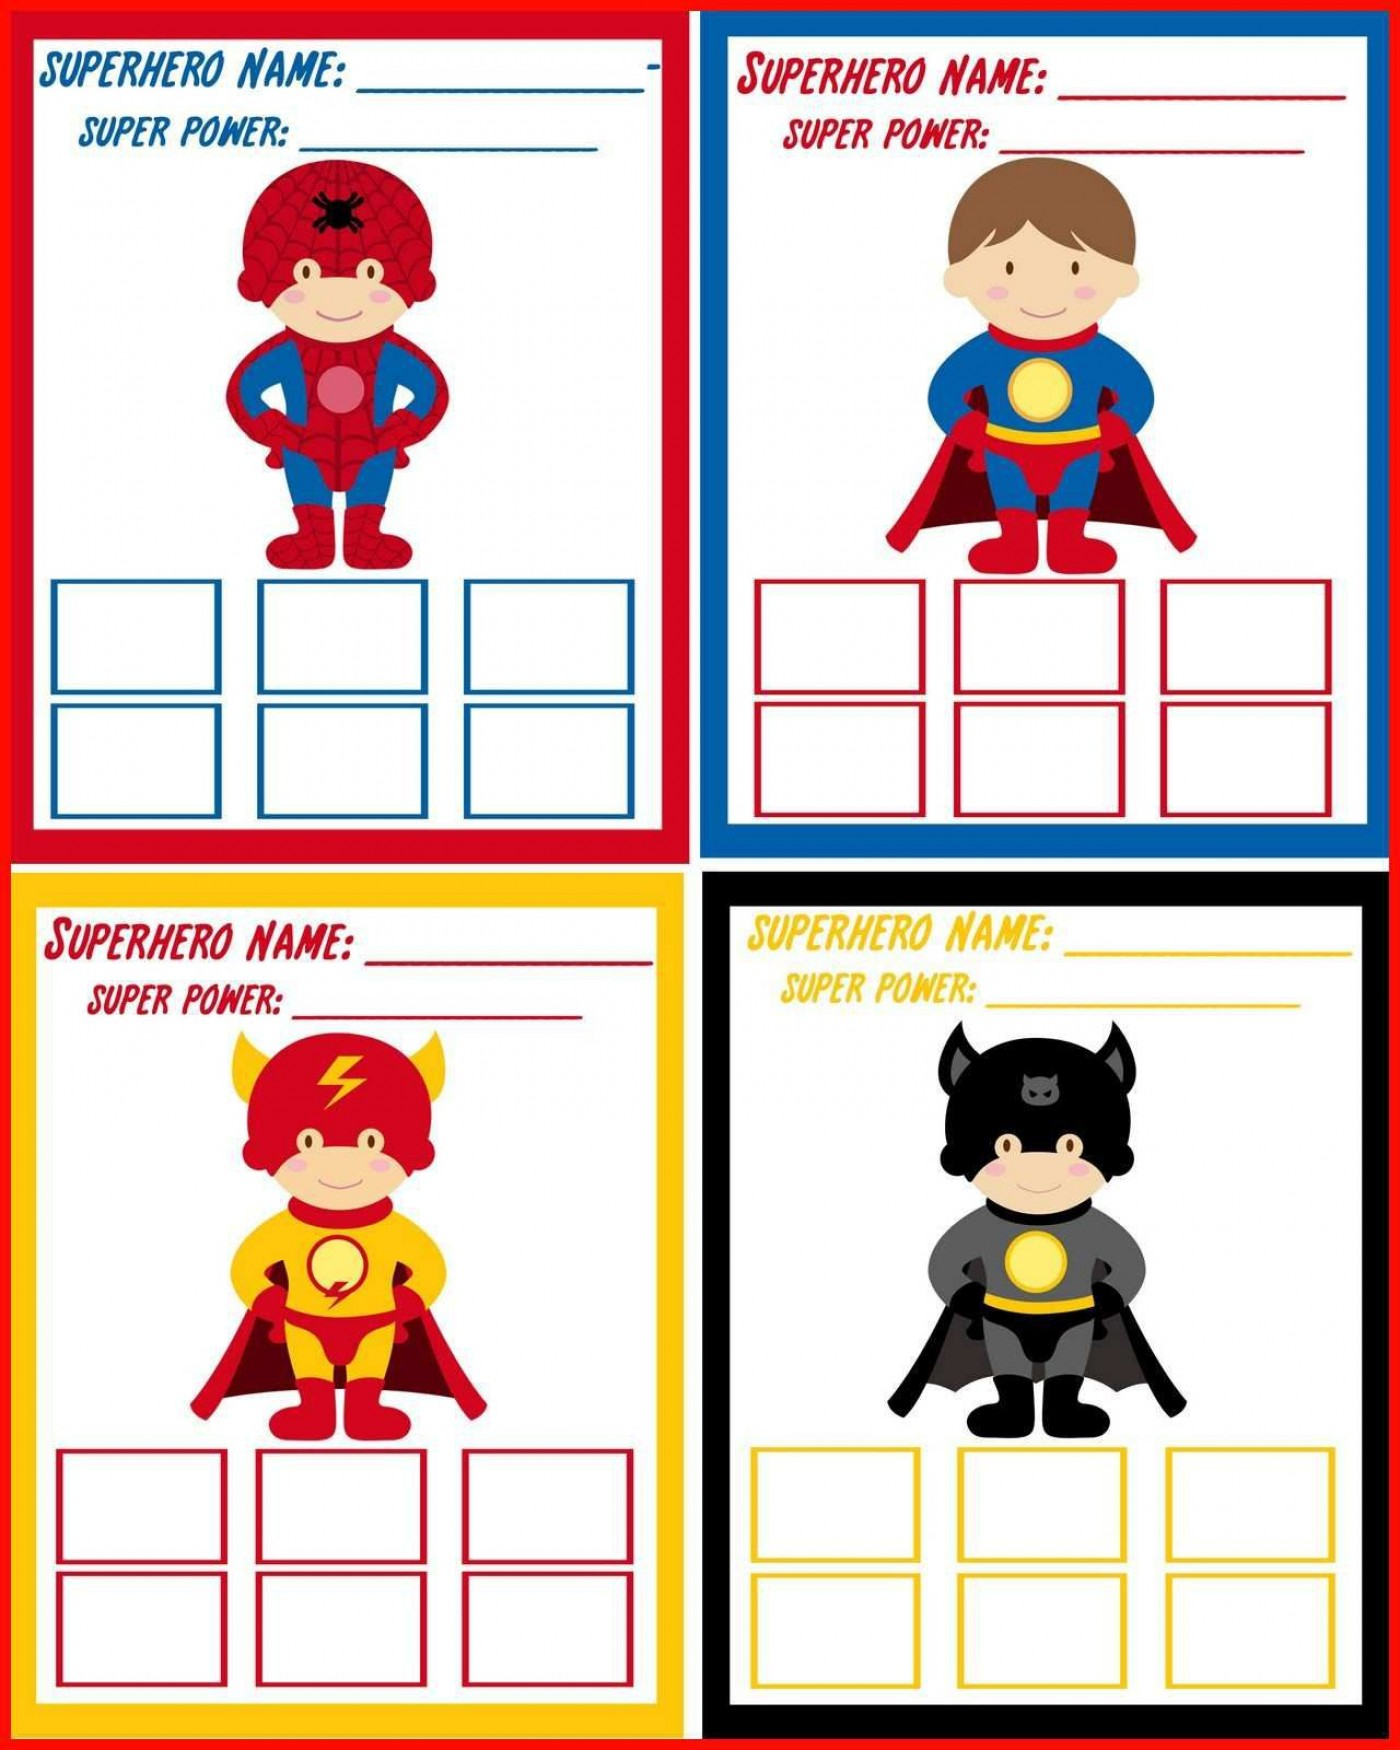 000 Phenomenal Superhero Invitation Template Free High Def  Newspaper Party Birthday Invite1400